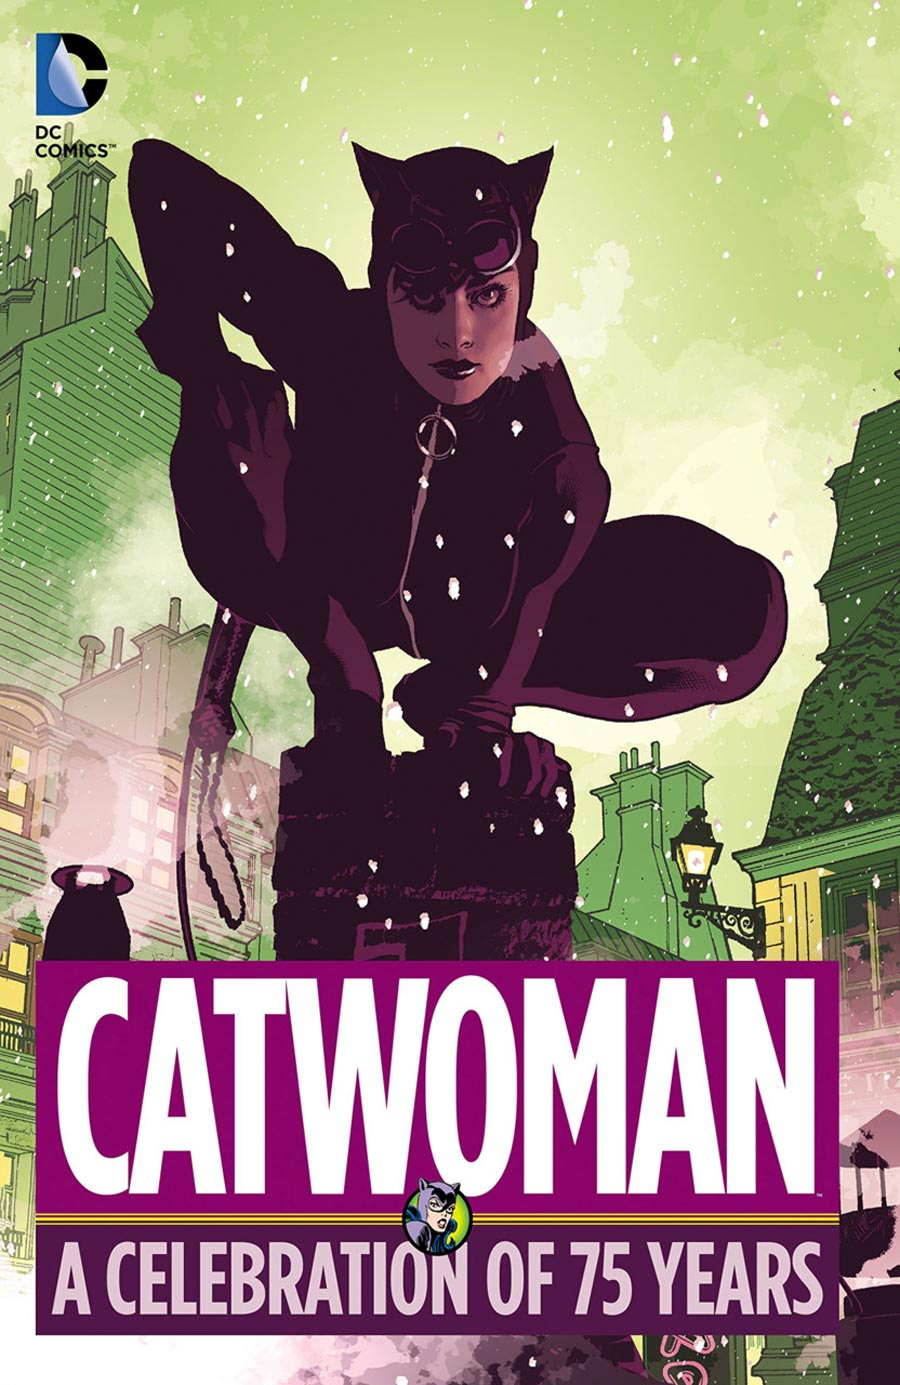 Catwoman - A Celebration of 75 Years 1 - 75 Years